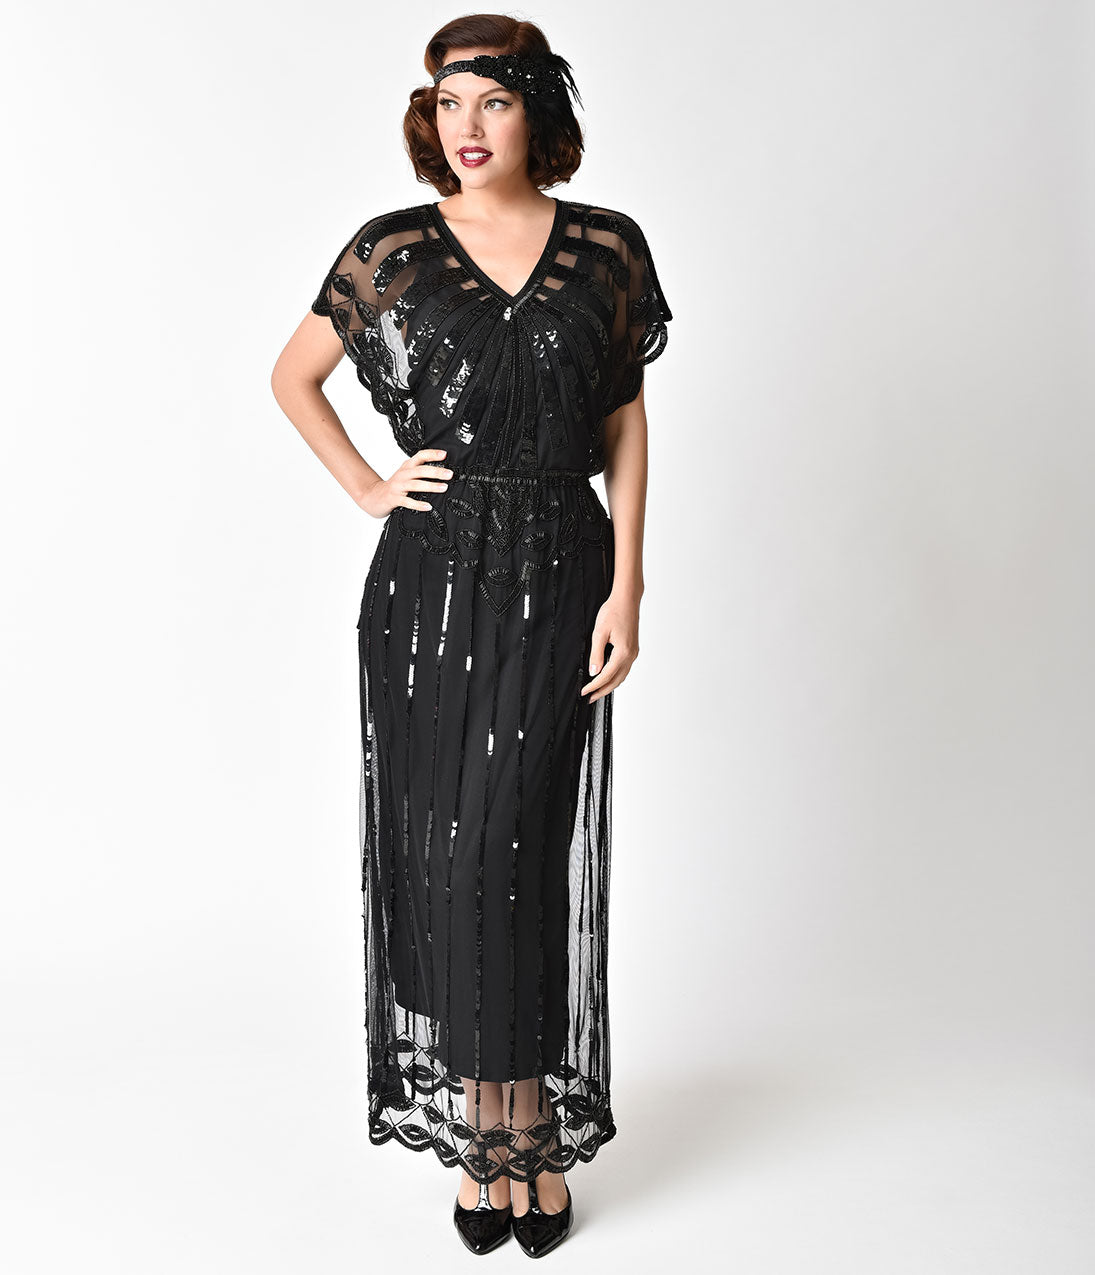 Vintage Evening Dresses and Formal Evening Gowns 1920S Black Beaded Deco Angelina Maxi Flapper Dress $126.00 AT vintagedancer.com